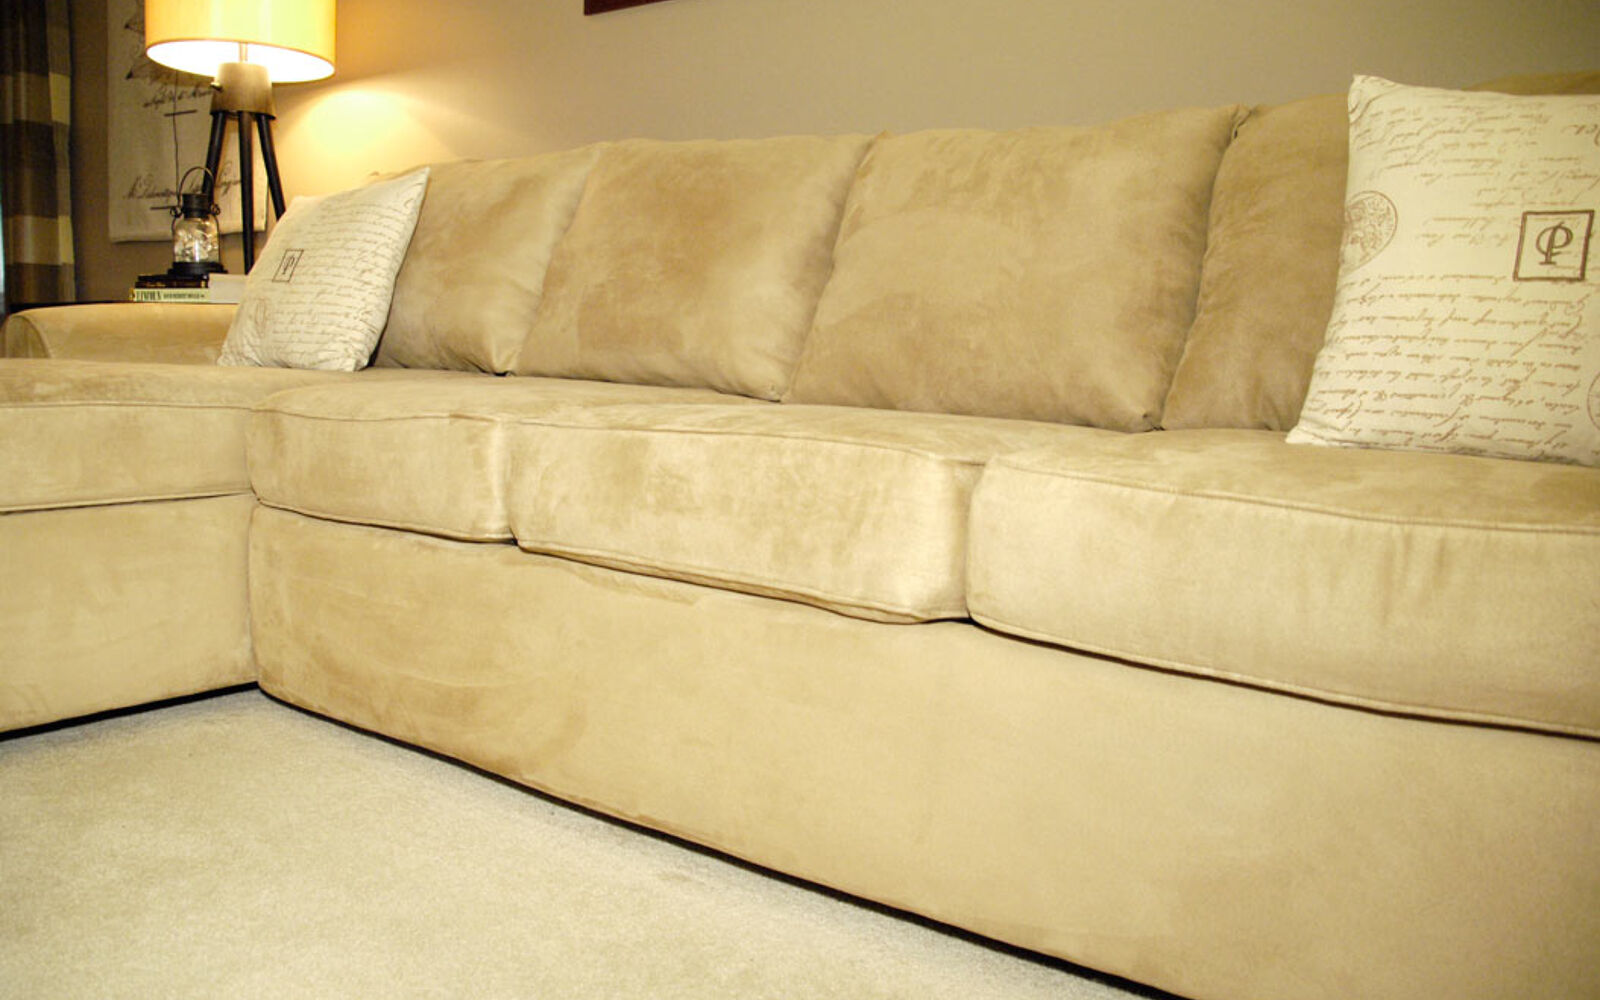 s hide your couch s wear and tear with these great ideas, Make an old couch new again for 10